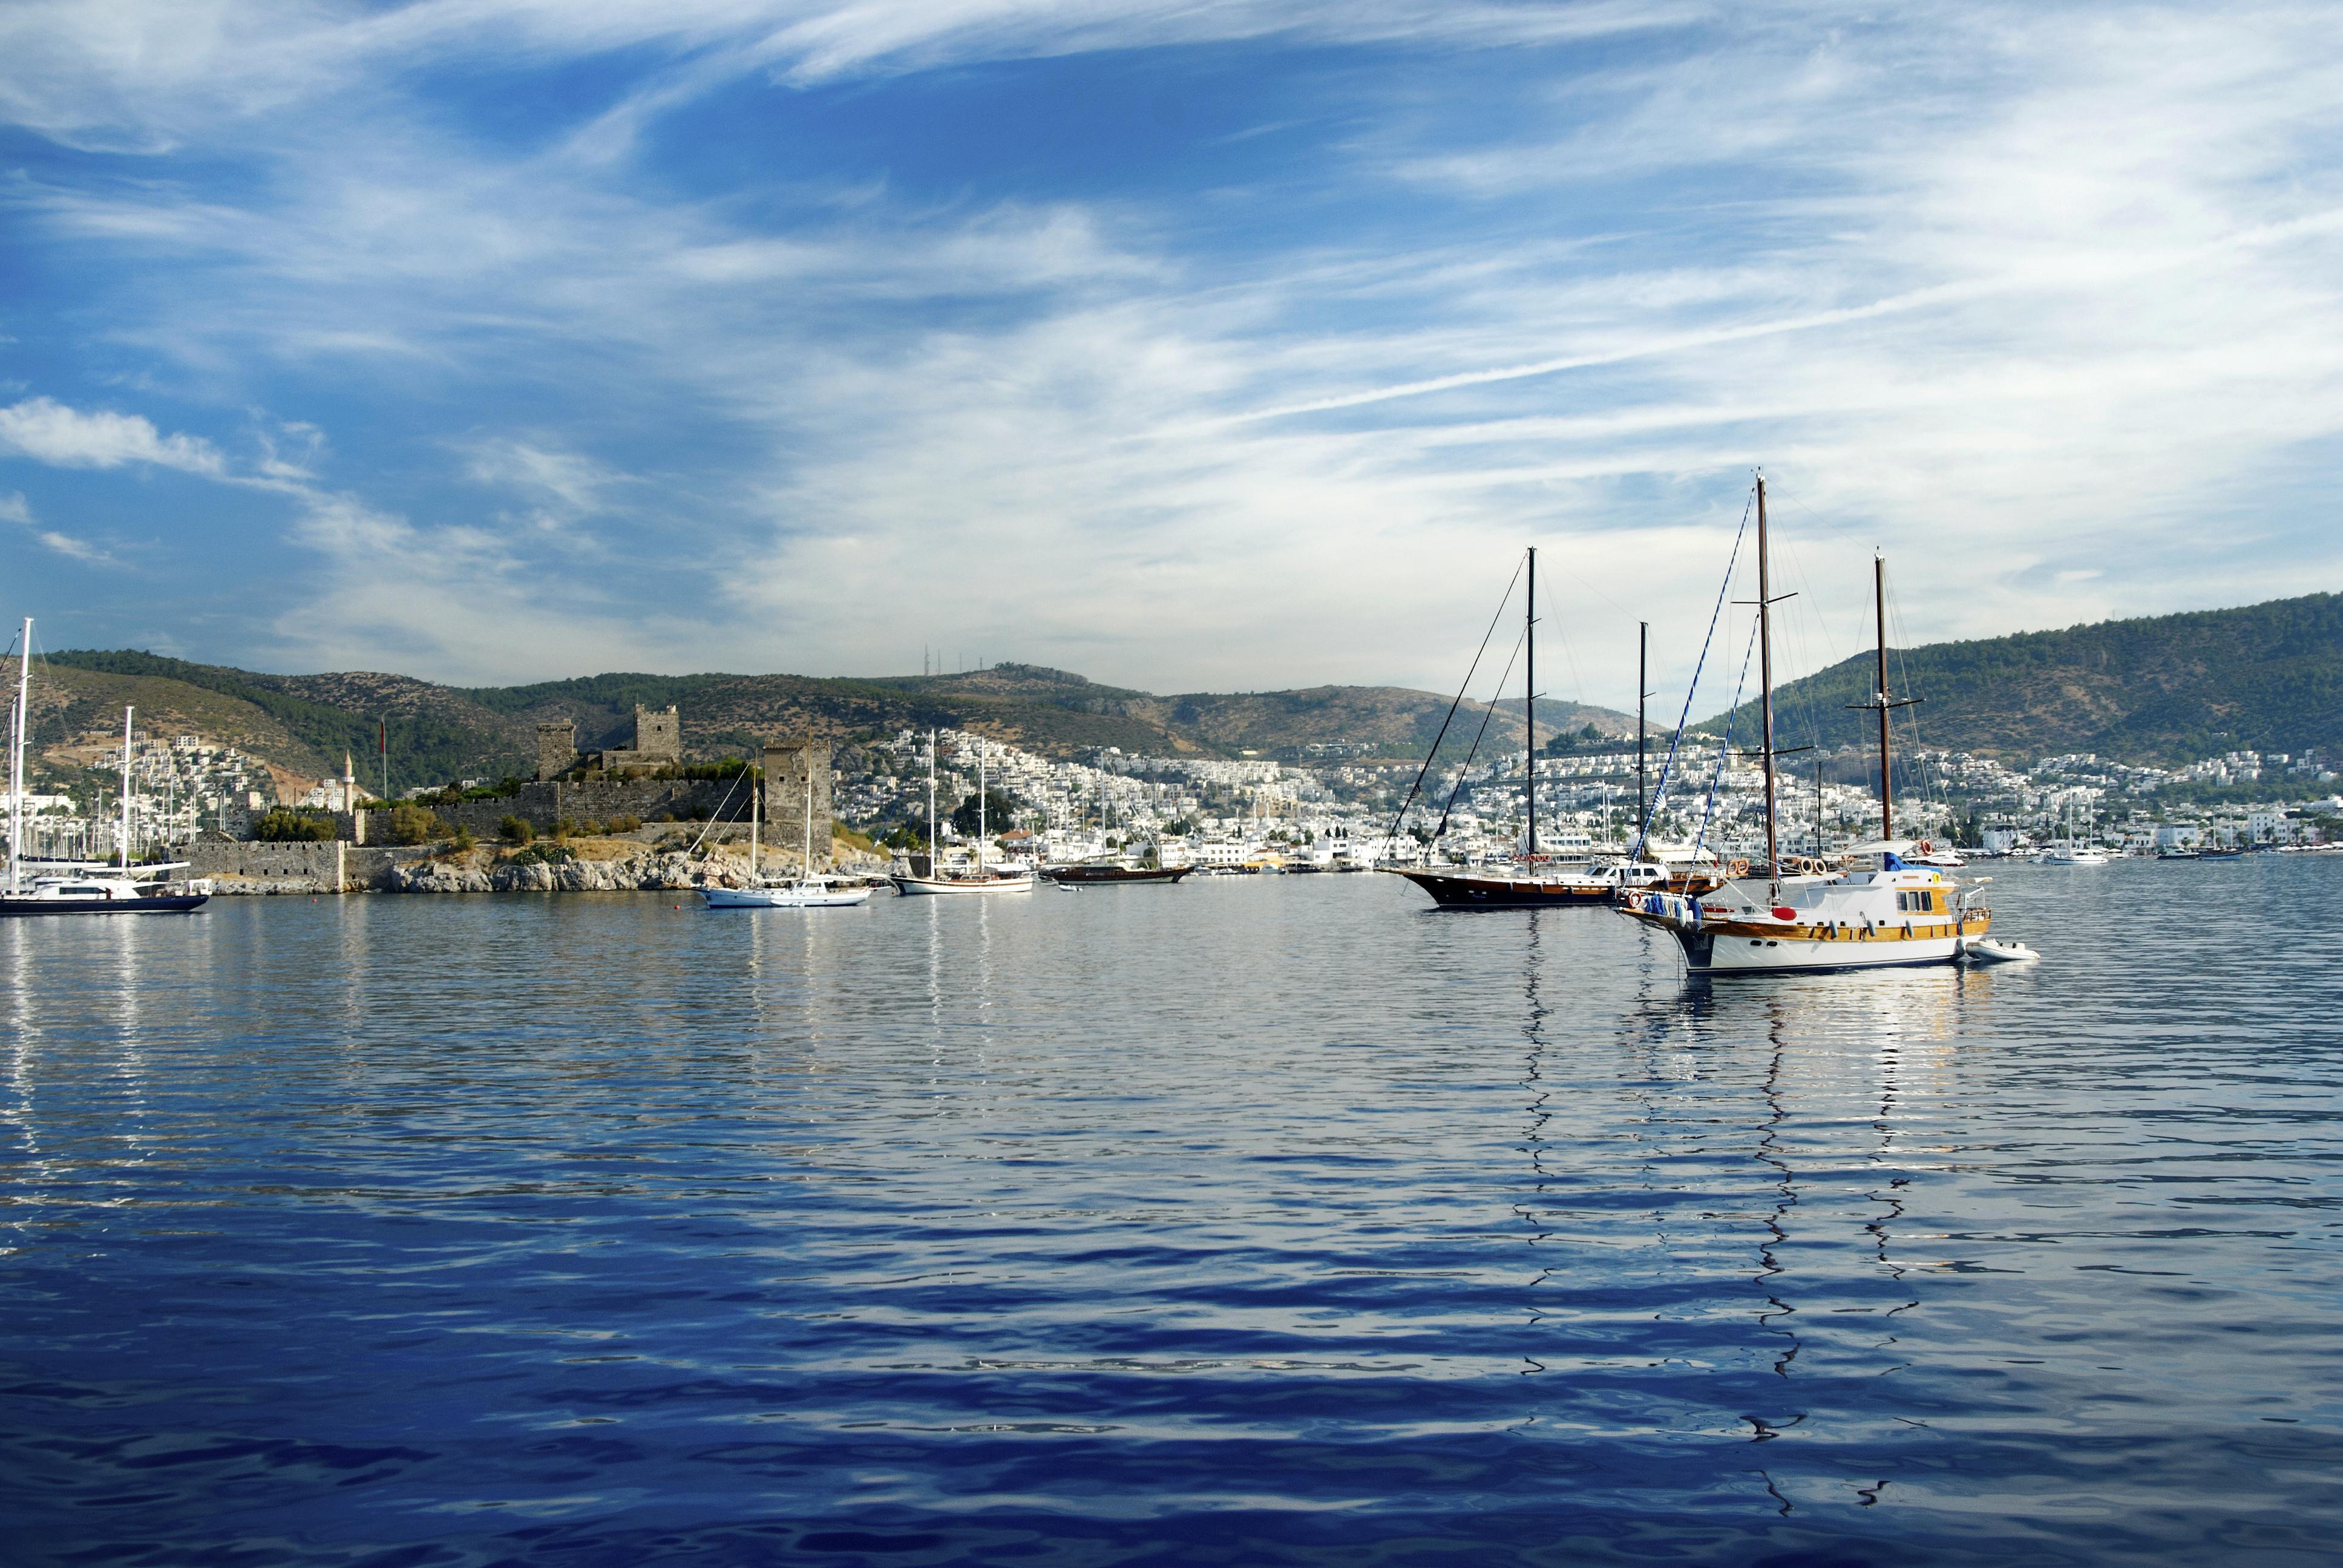 How to Spend 1 Day in Bodrum